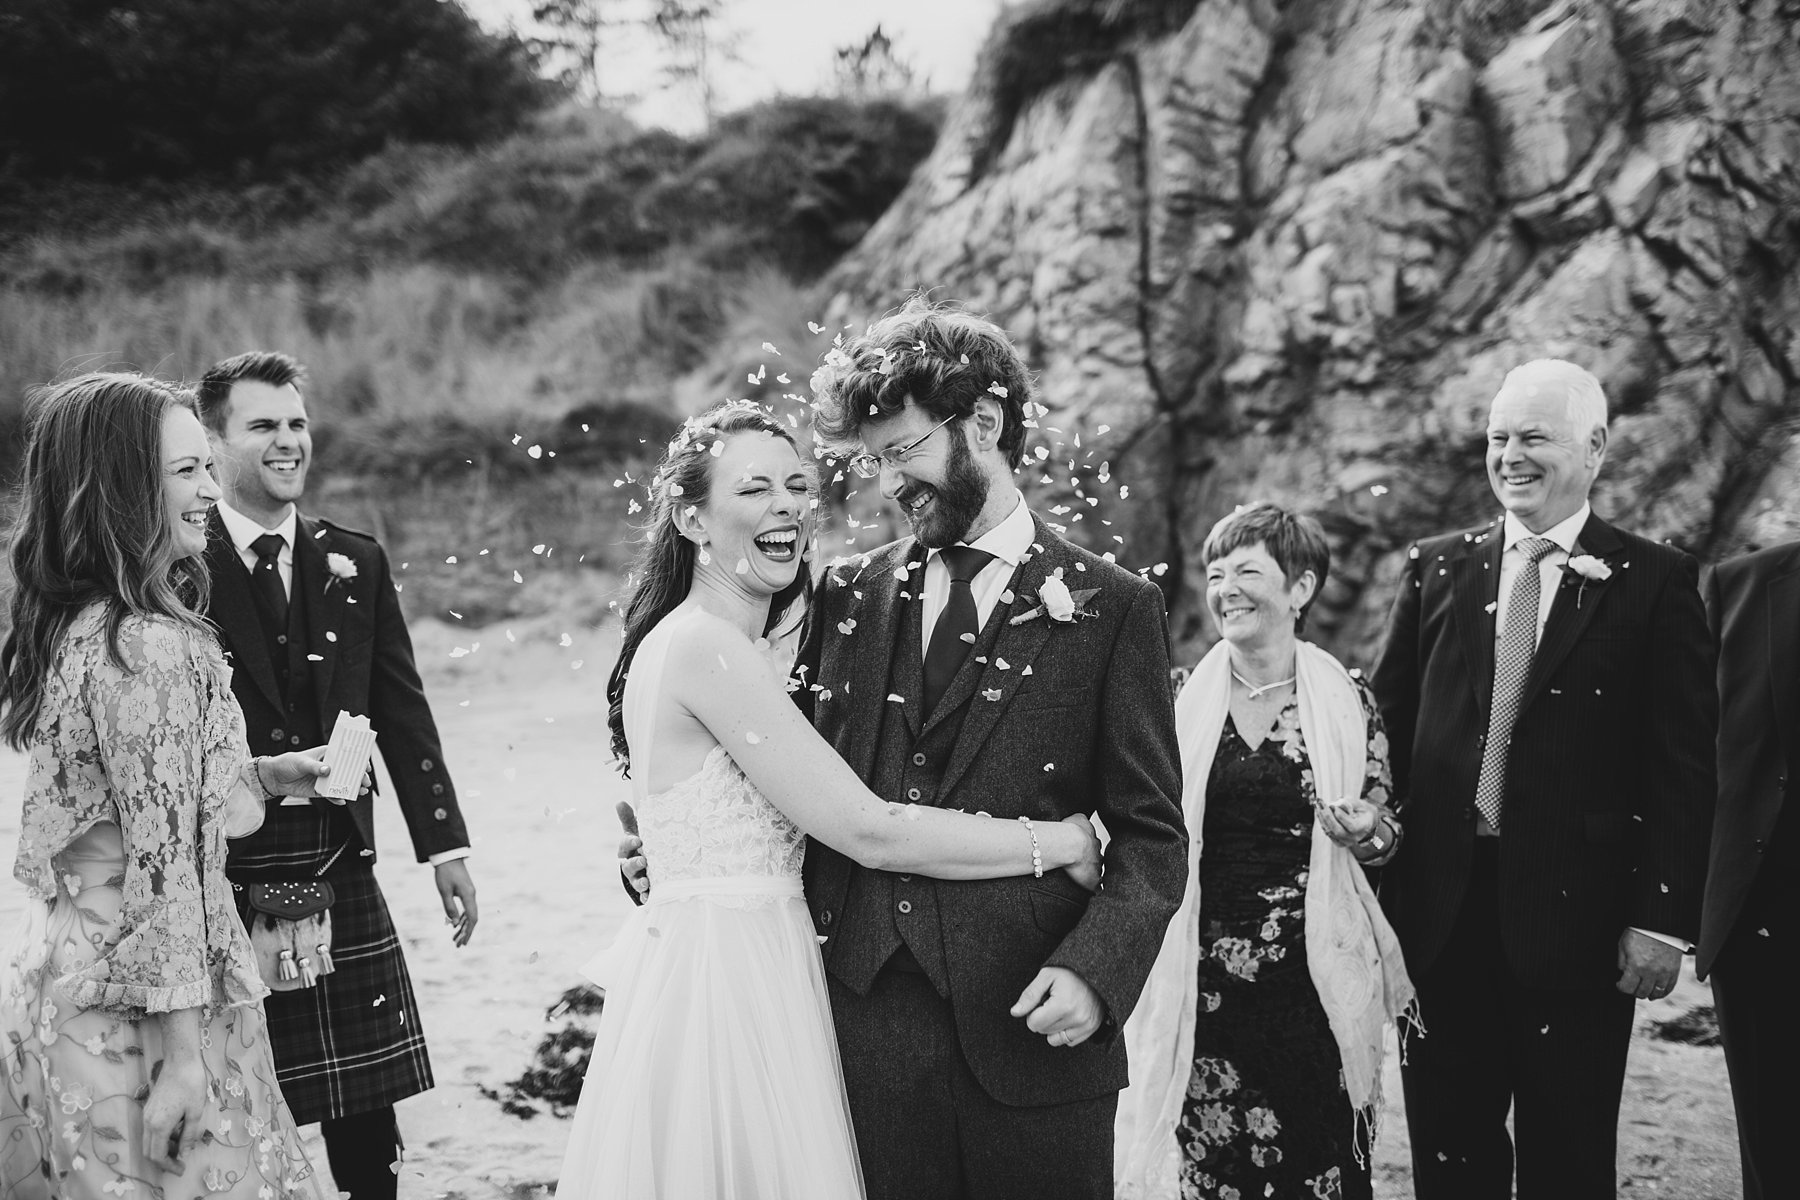 hornhead_donegak_elopement_weddings_0051